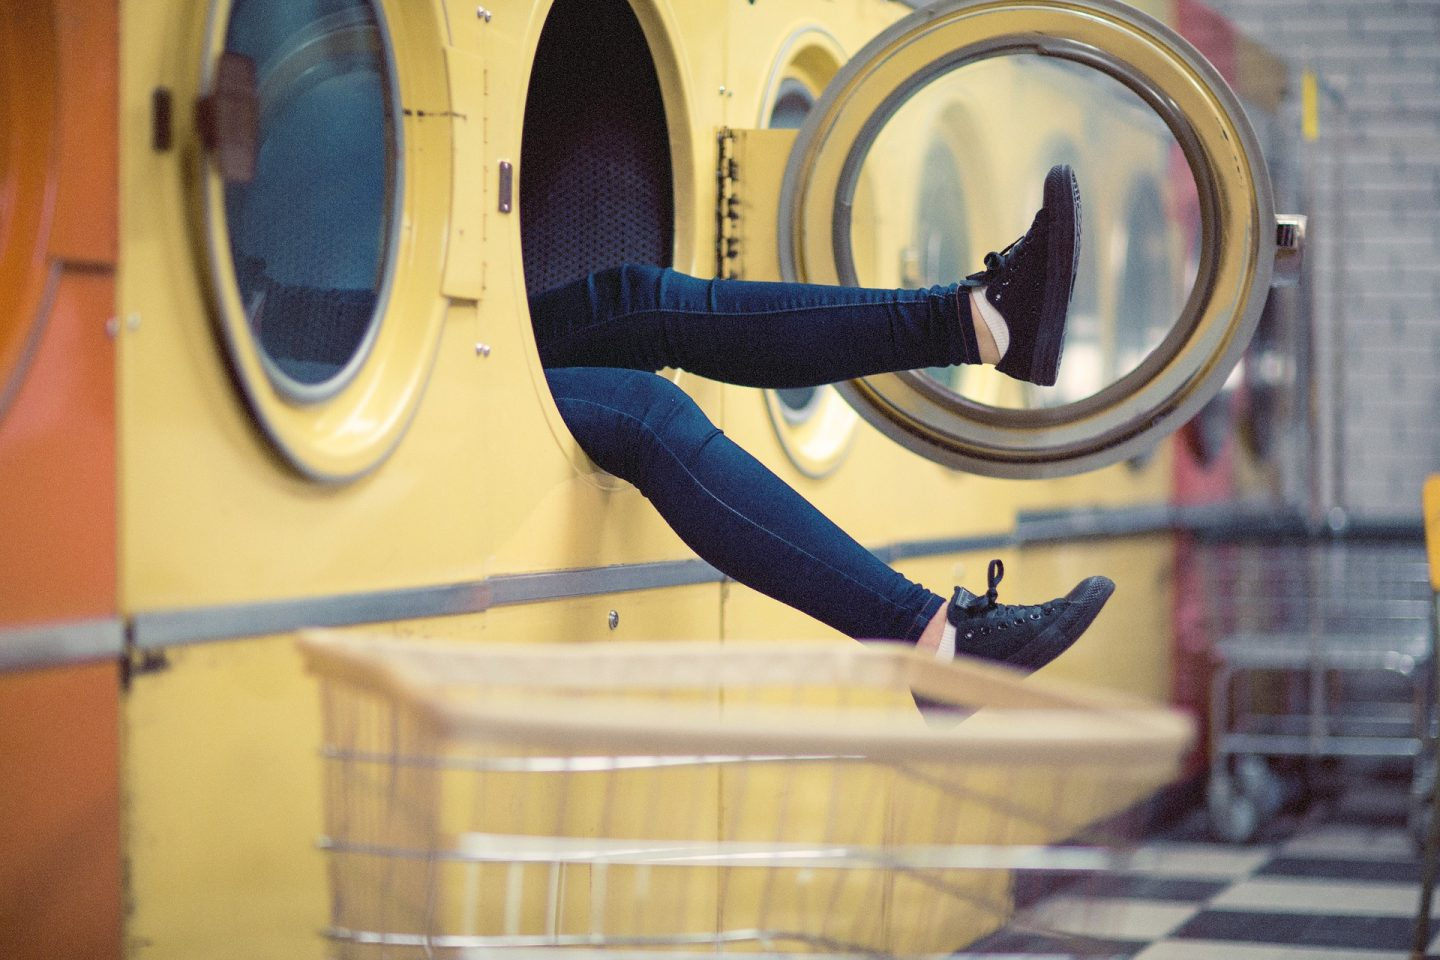 6 COMMON FAULTS WITH A WASHING MACHINE